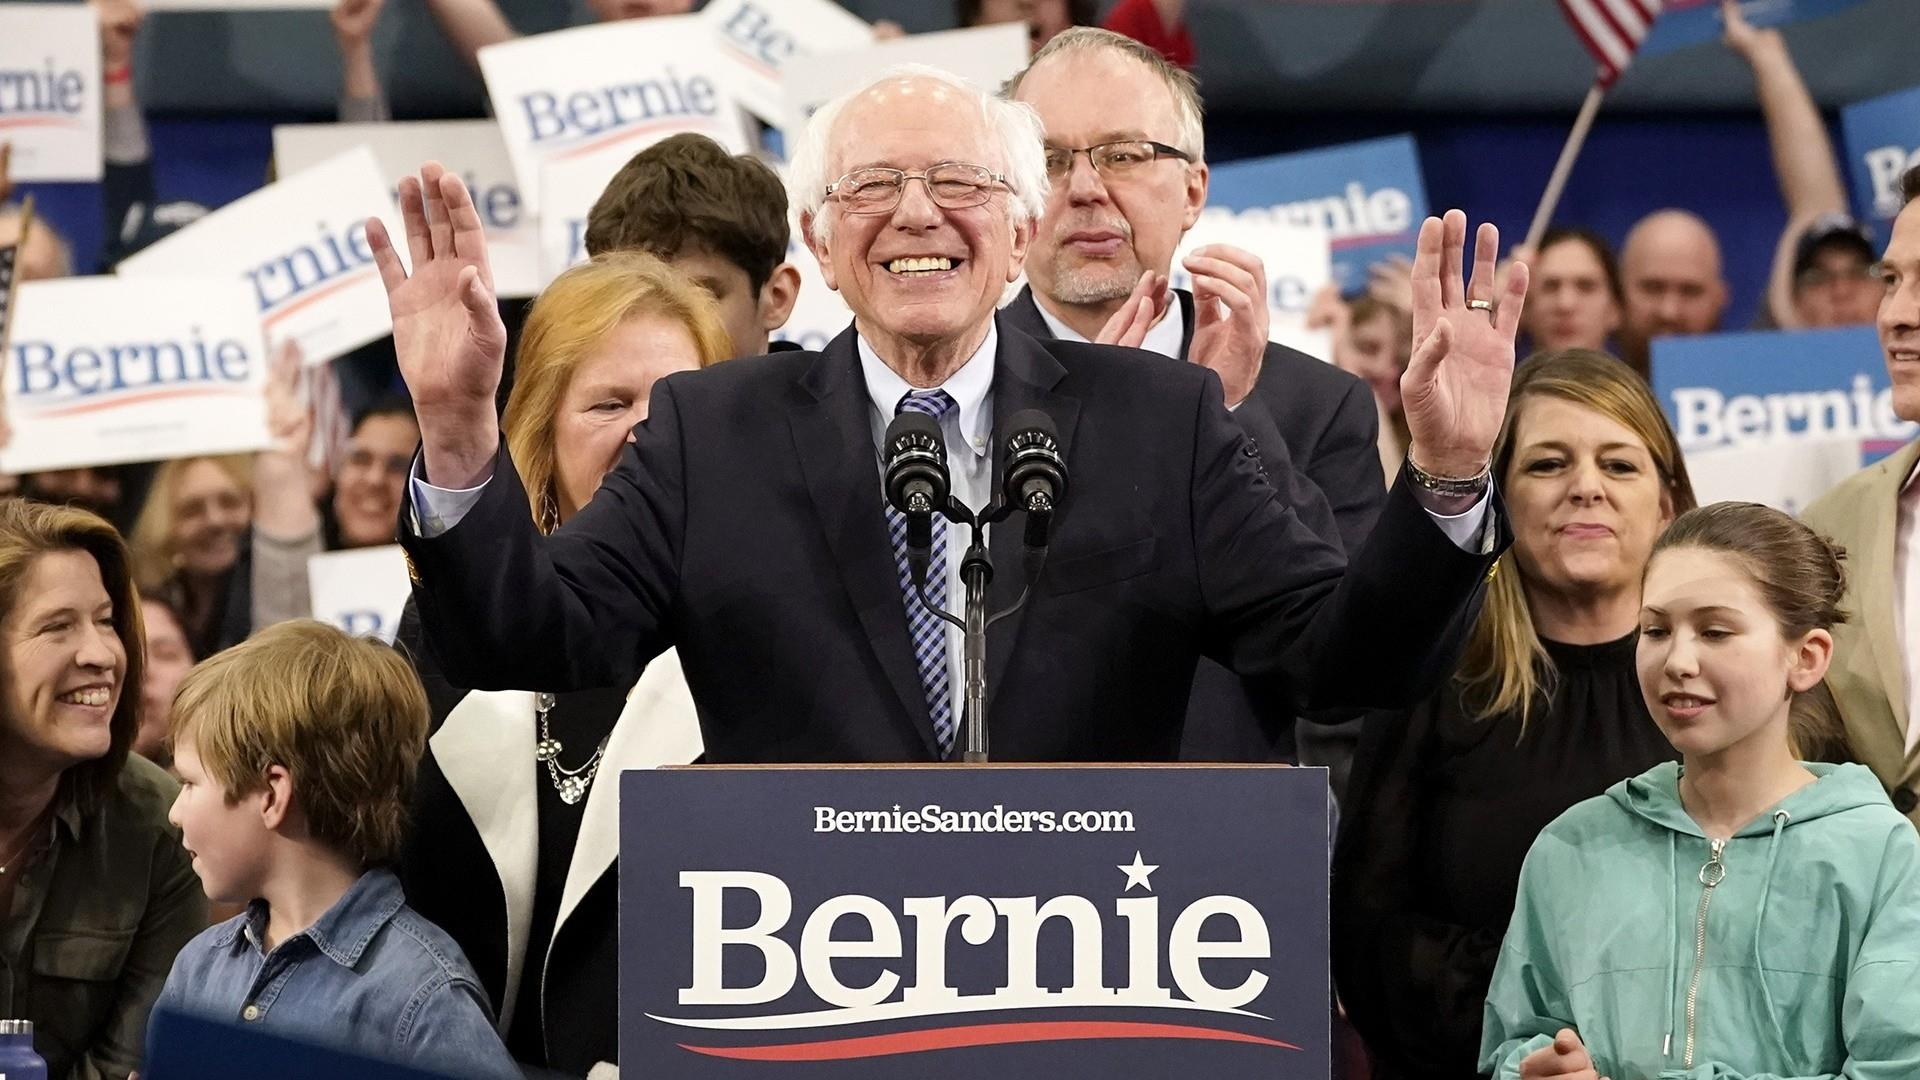 Bernie Sanders is now the front-runner. And moderates may be too divided to stop him.